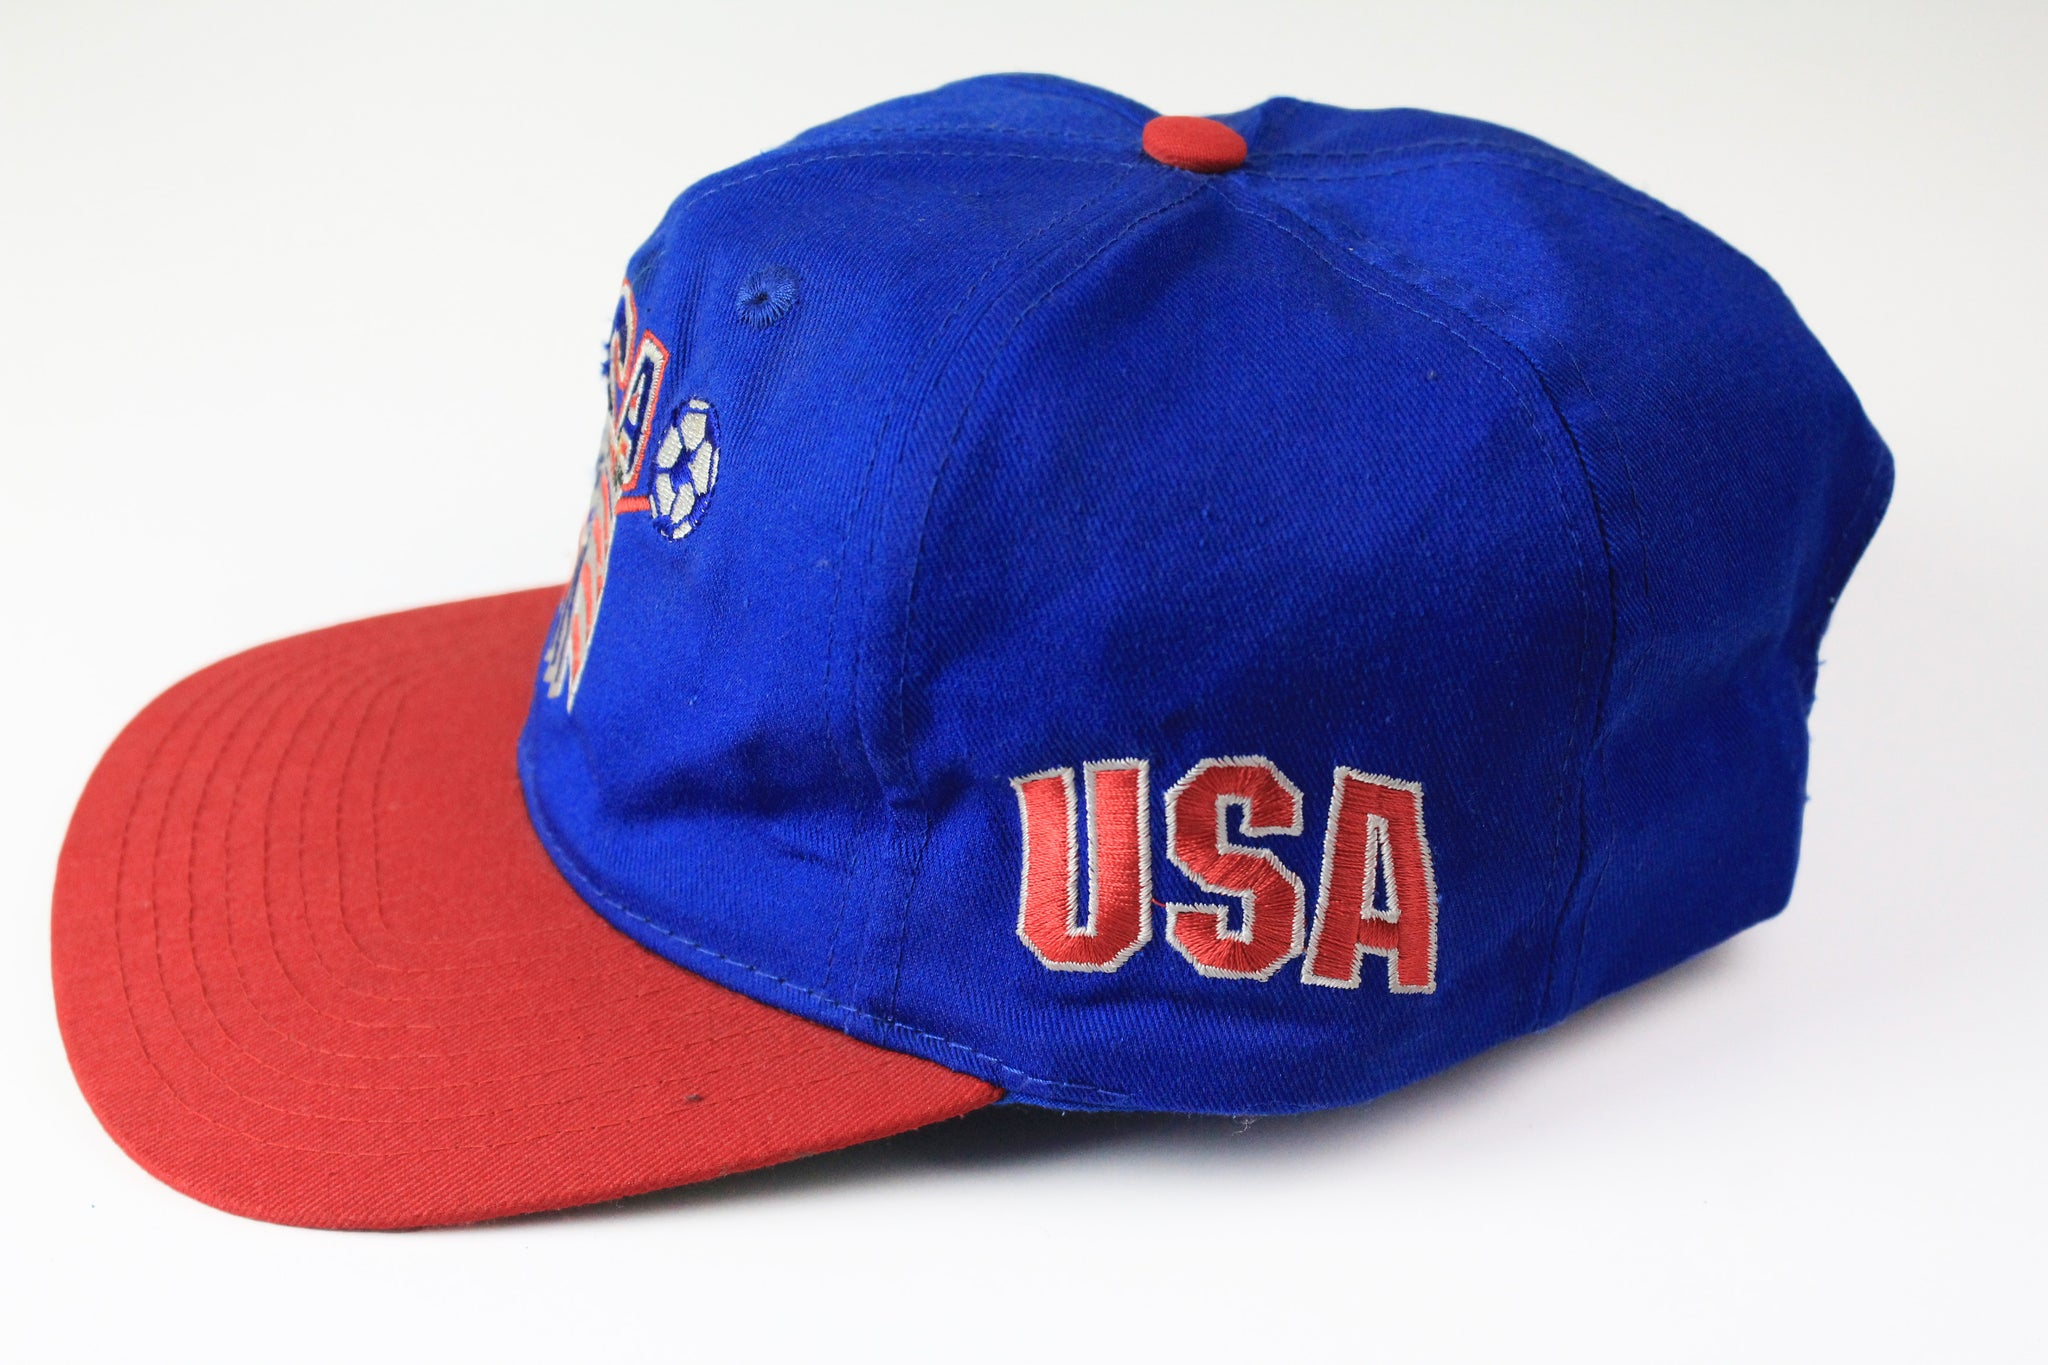 Vintage World Cup USA 94 Cap